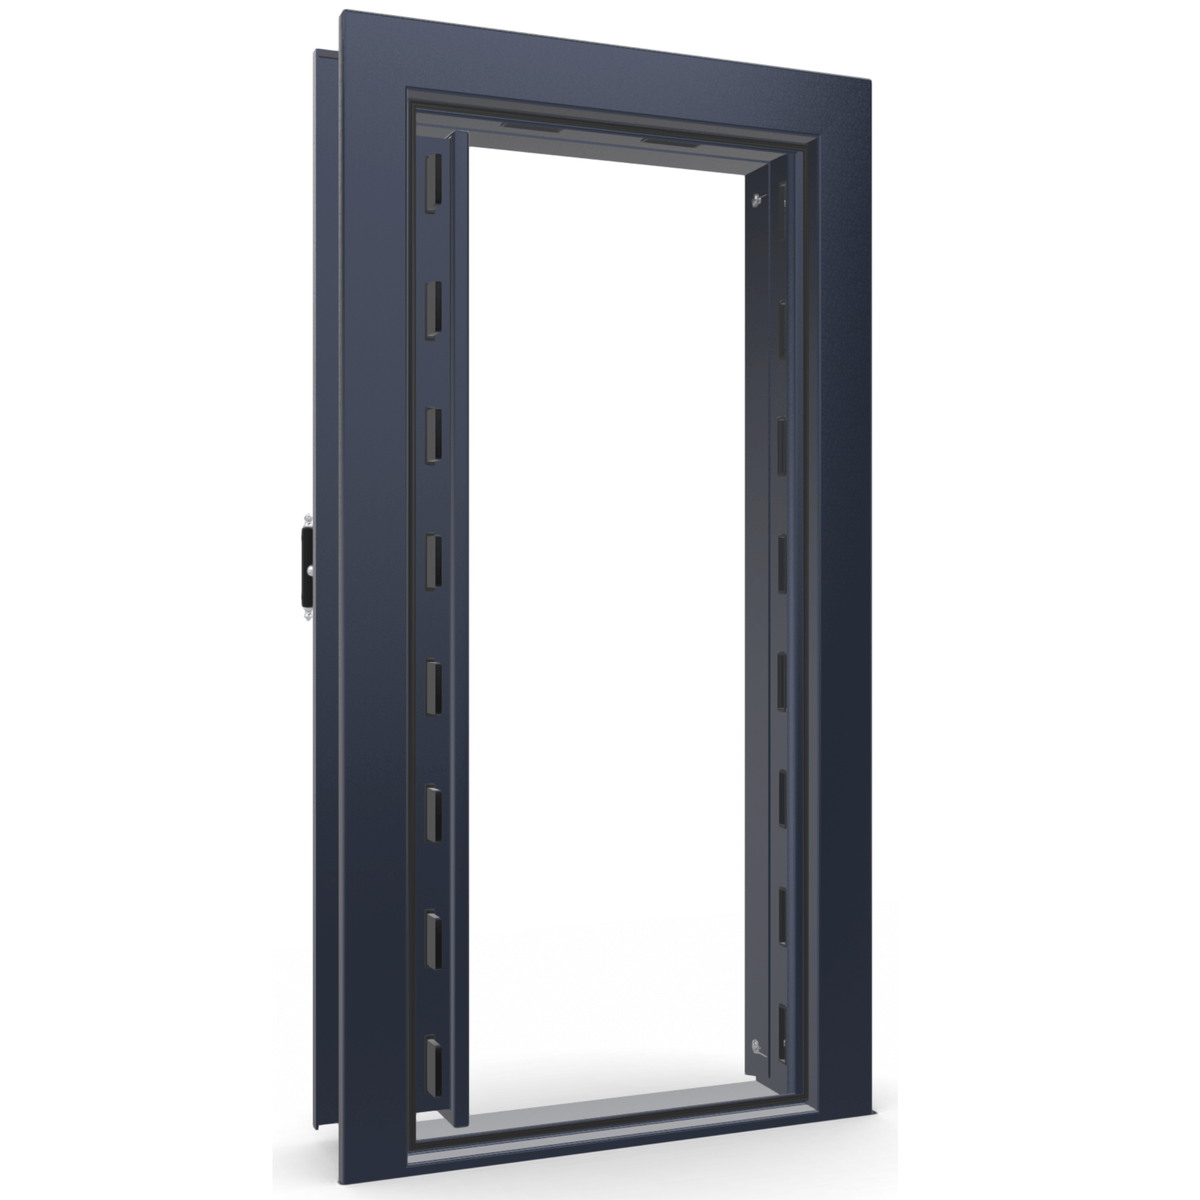 Vault Door Series | Out-Swing | Right Hinge | Champagne Gloss | Mechanical